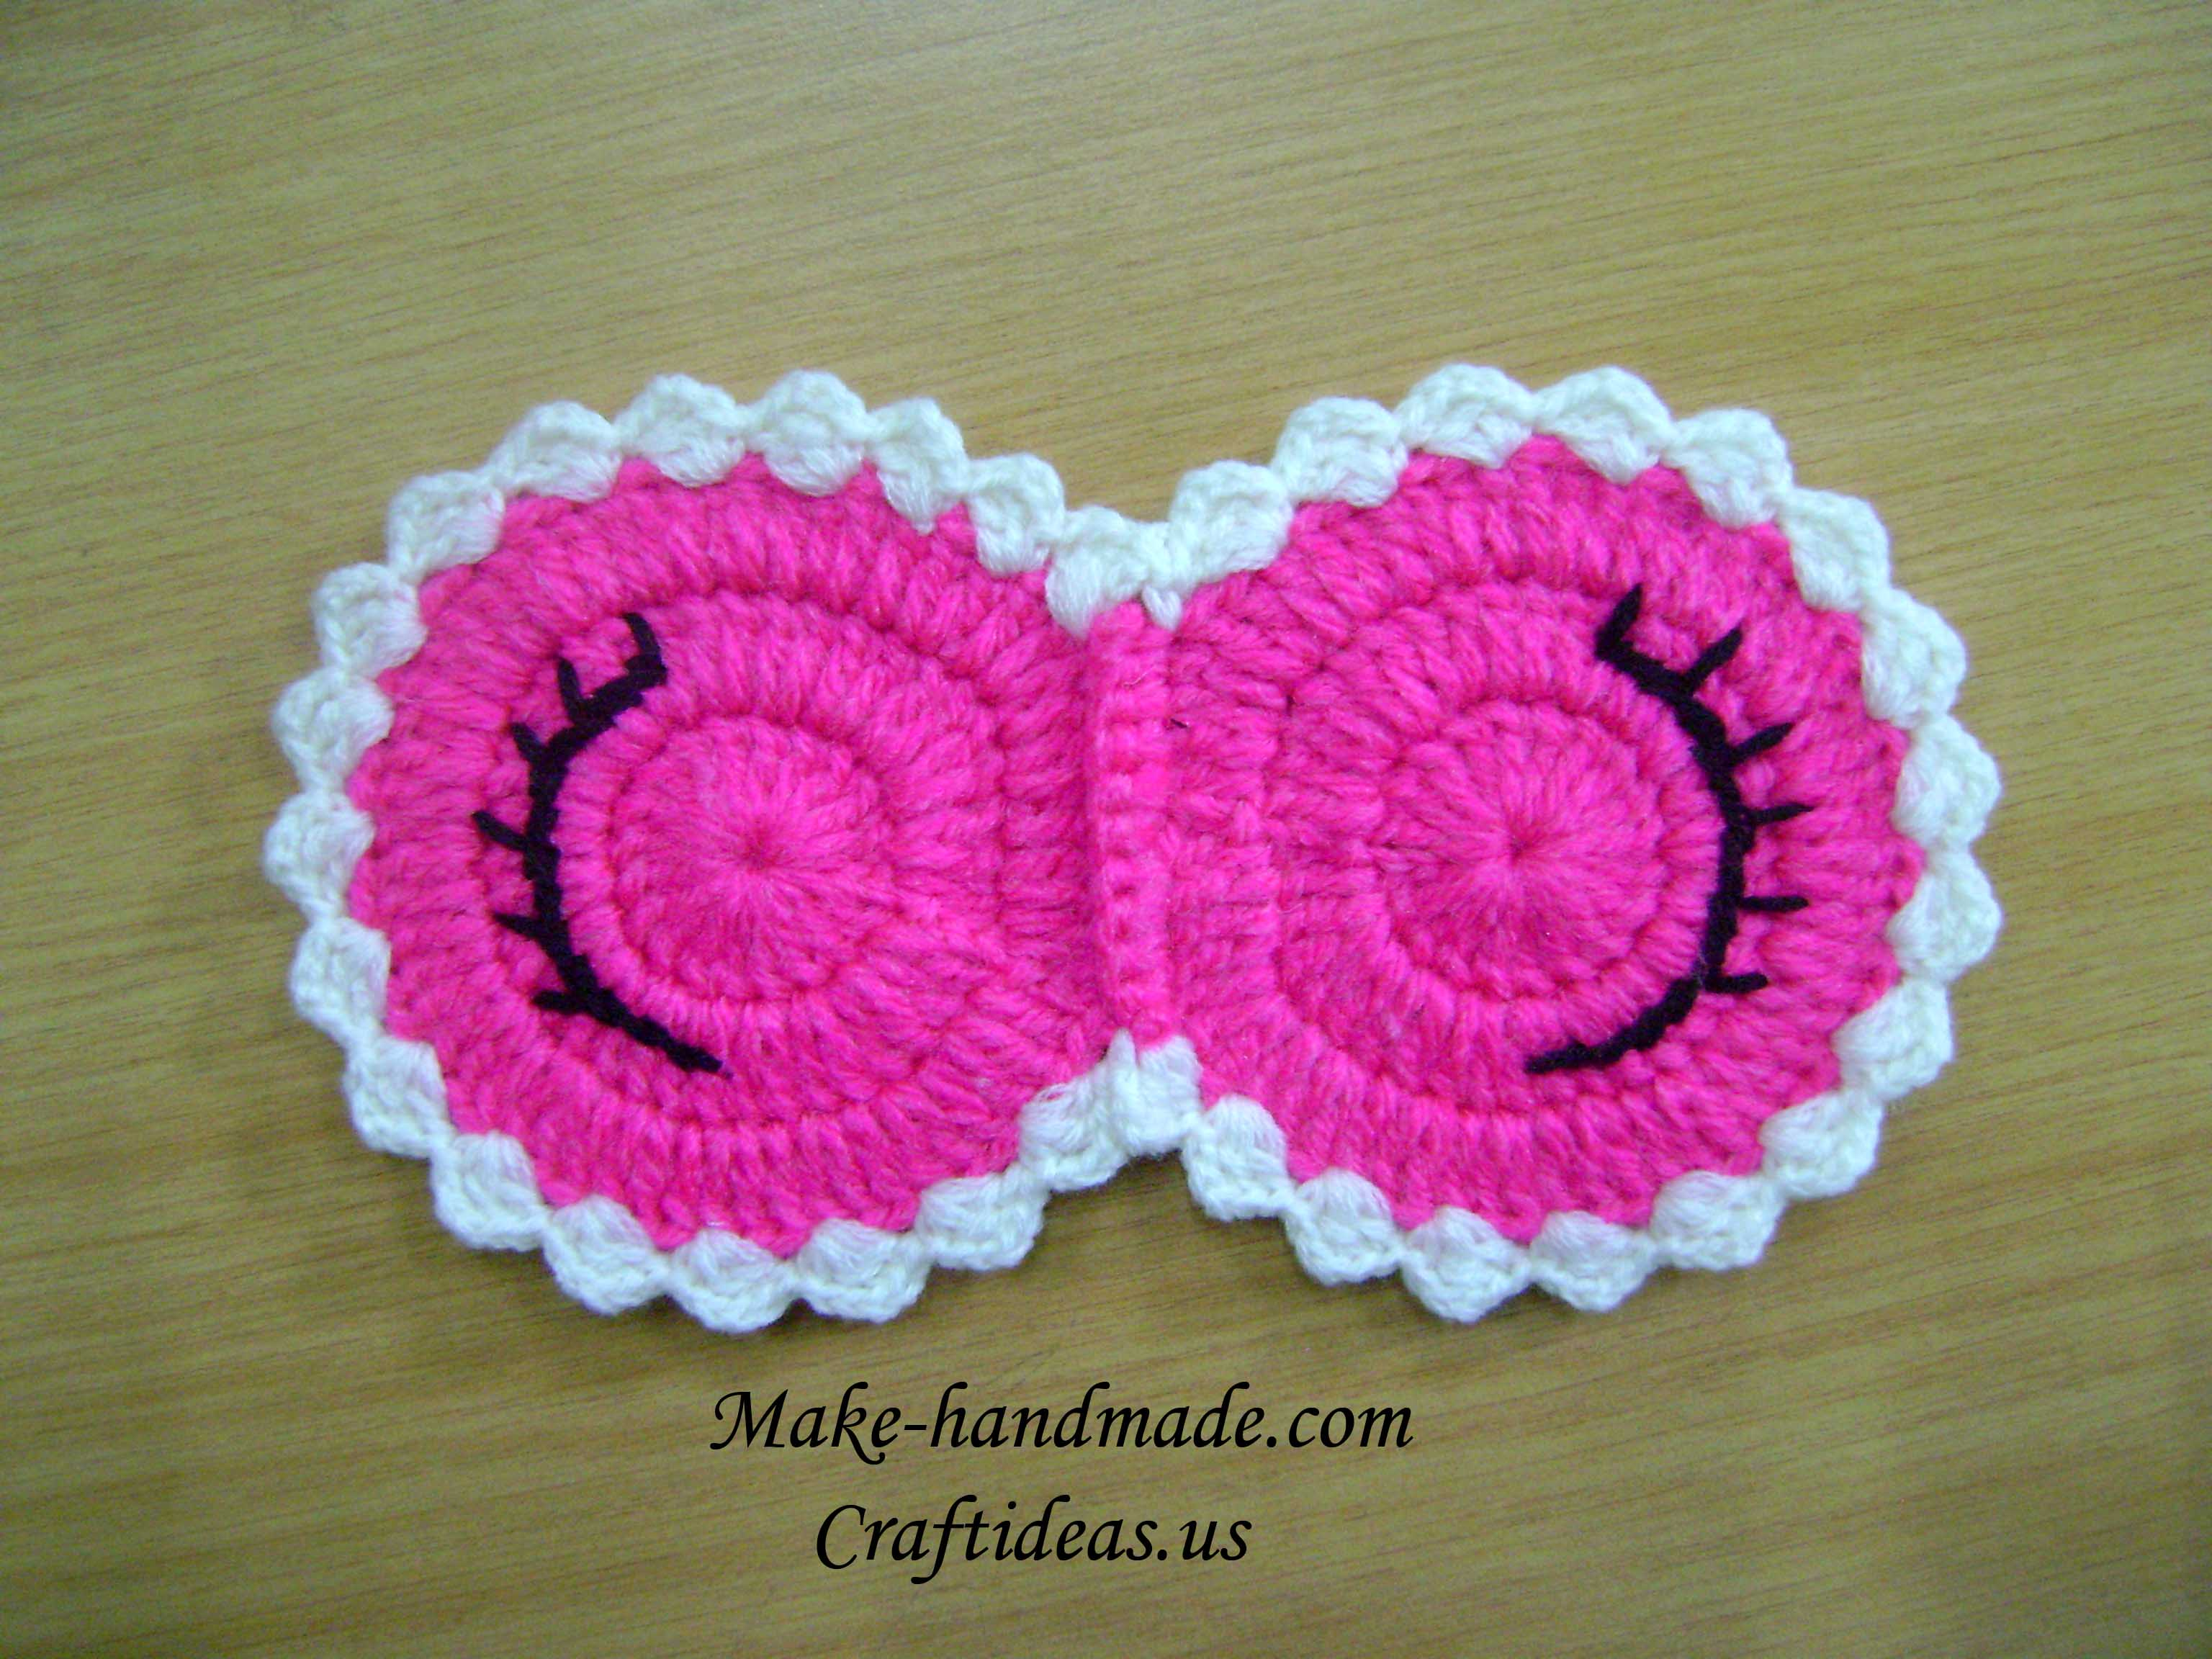 Crochet Gifts : crochet ideas make handmade gifts